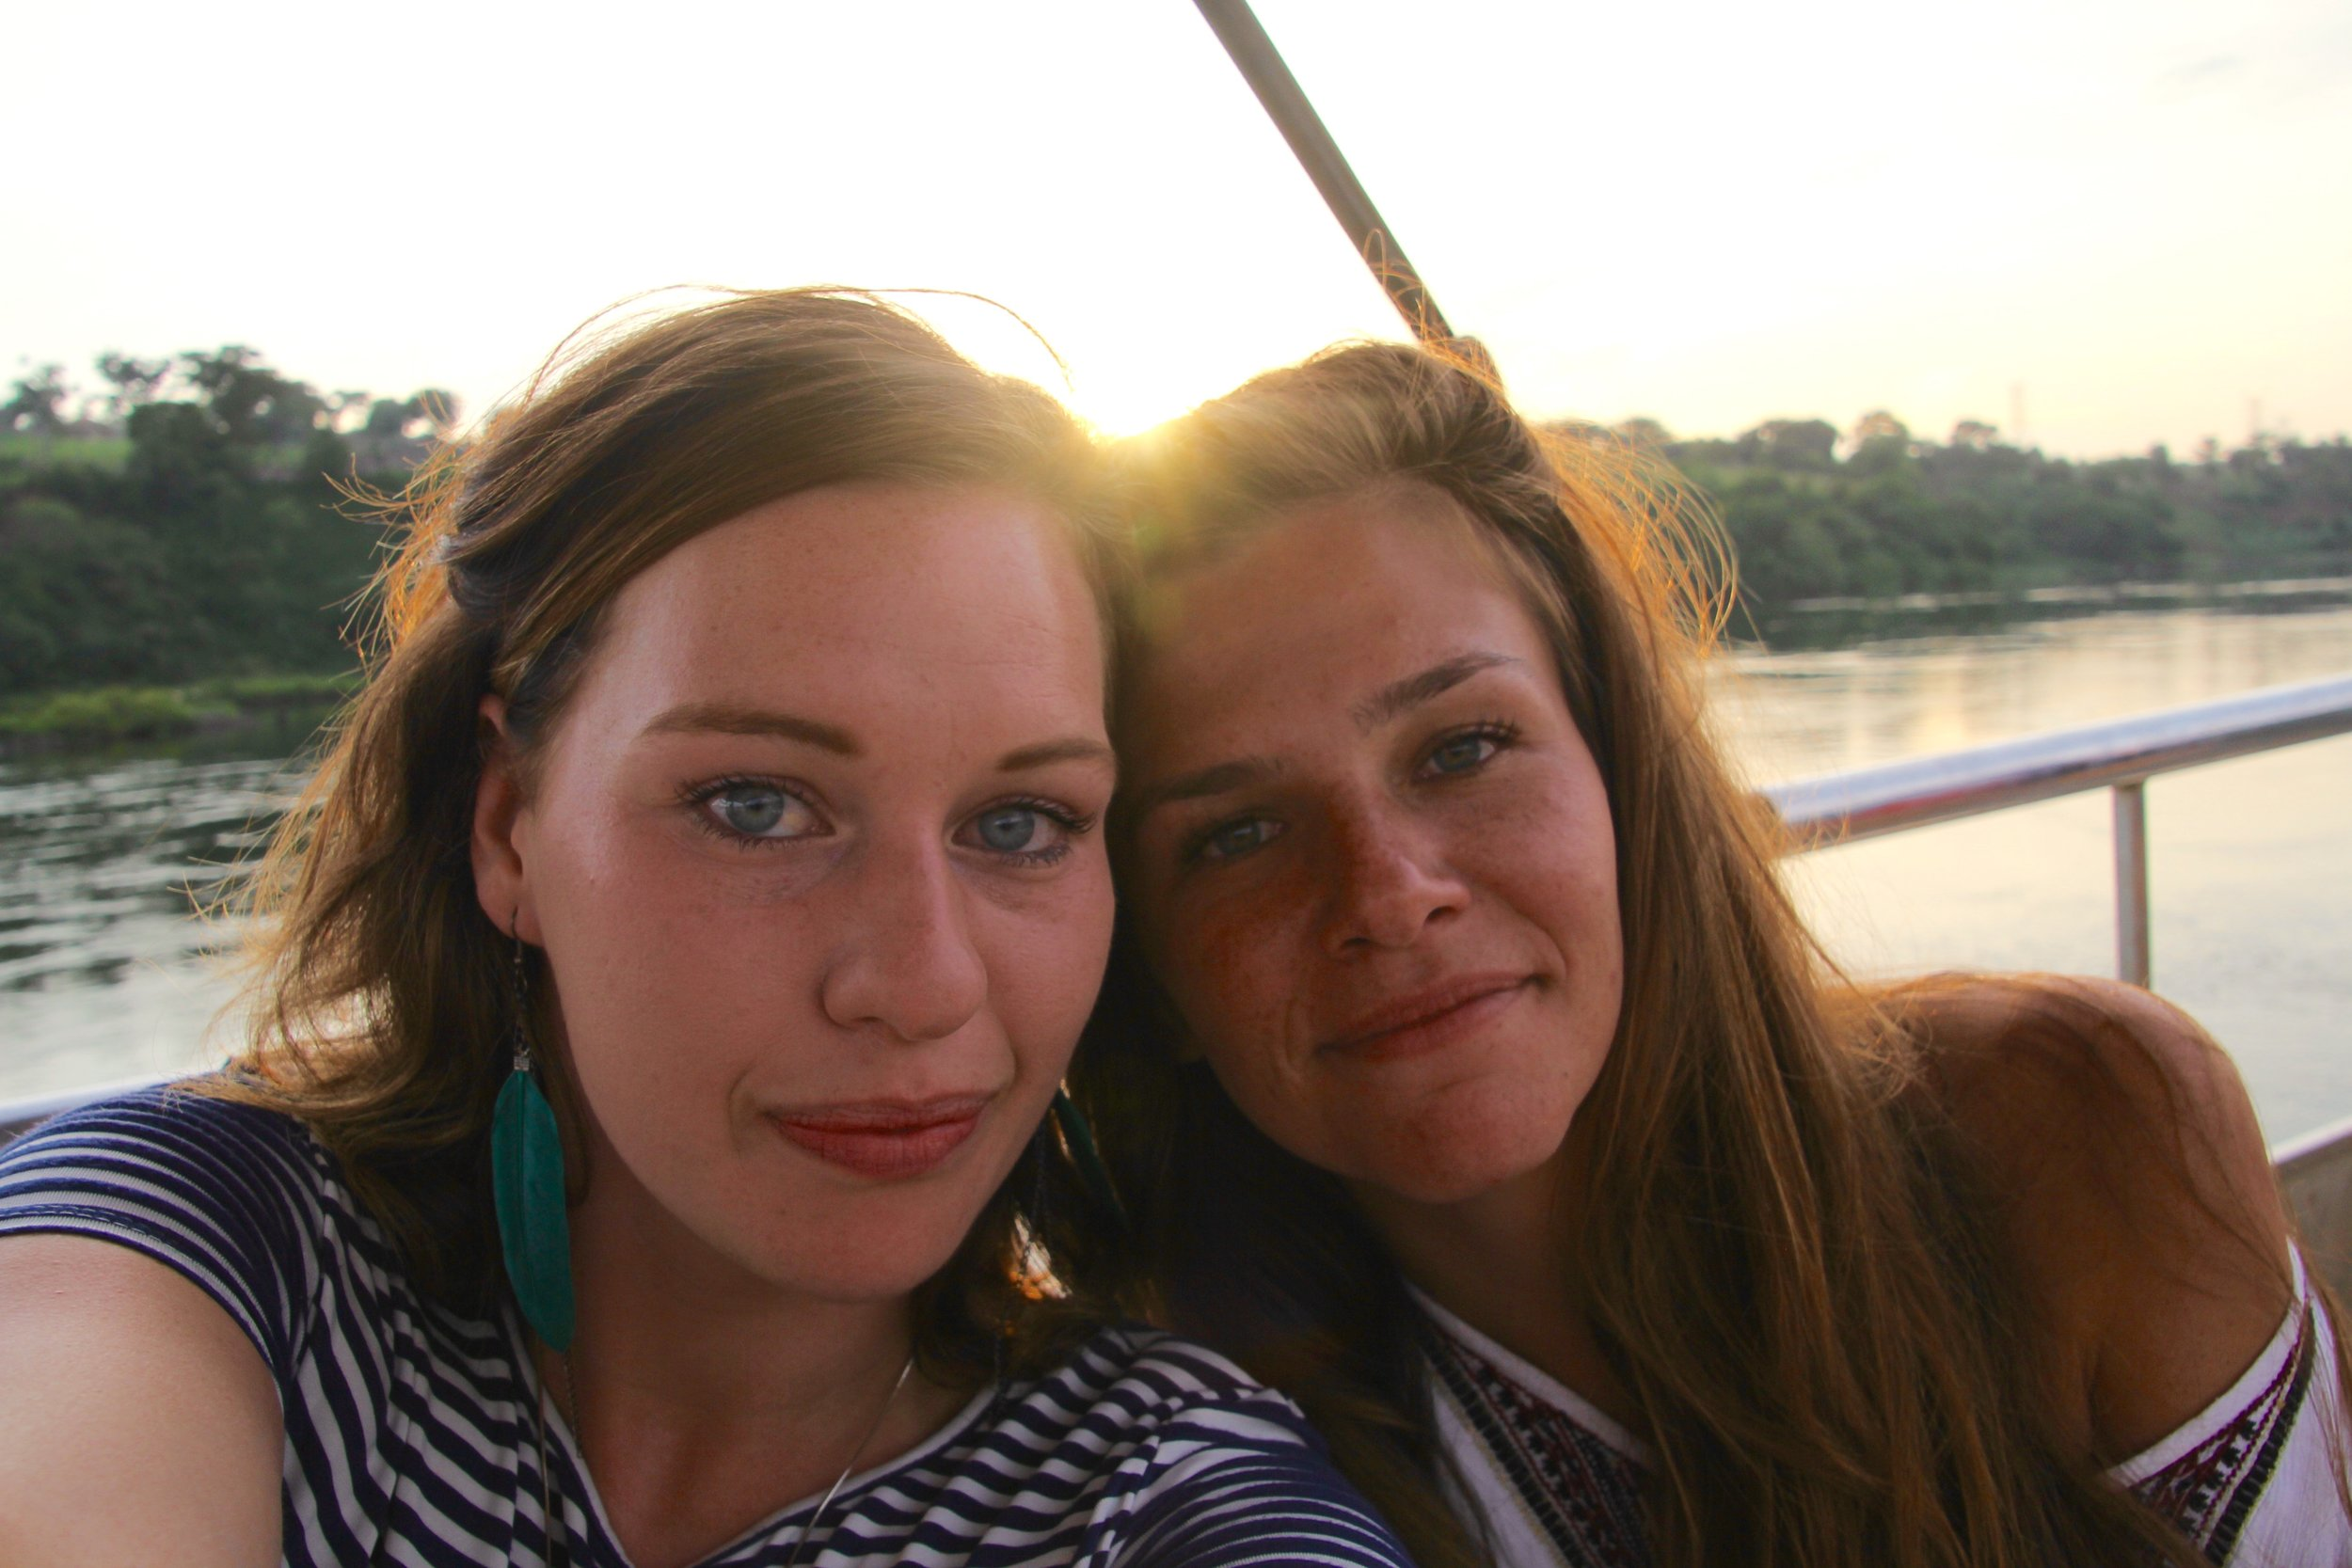 Myself and Lena on the cruise